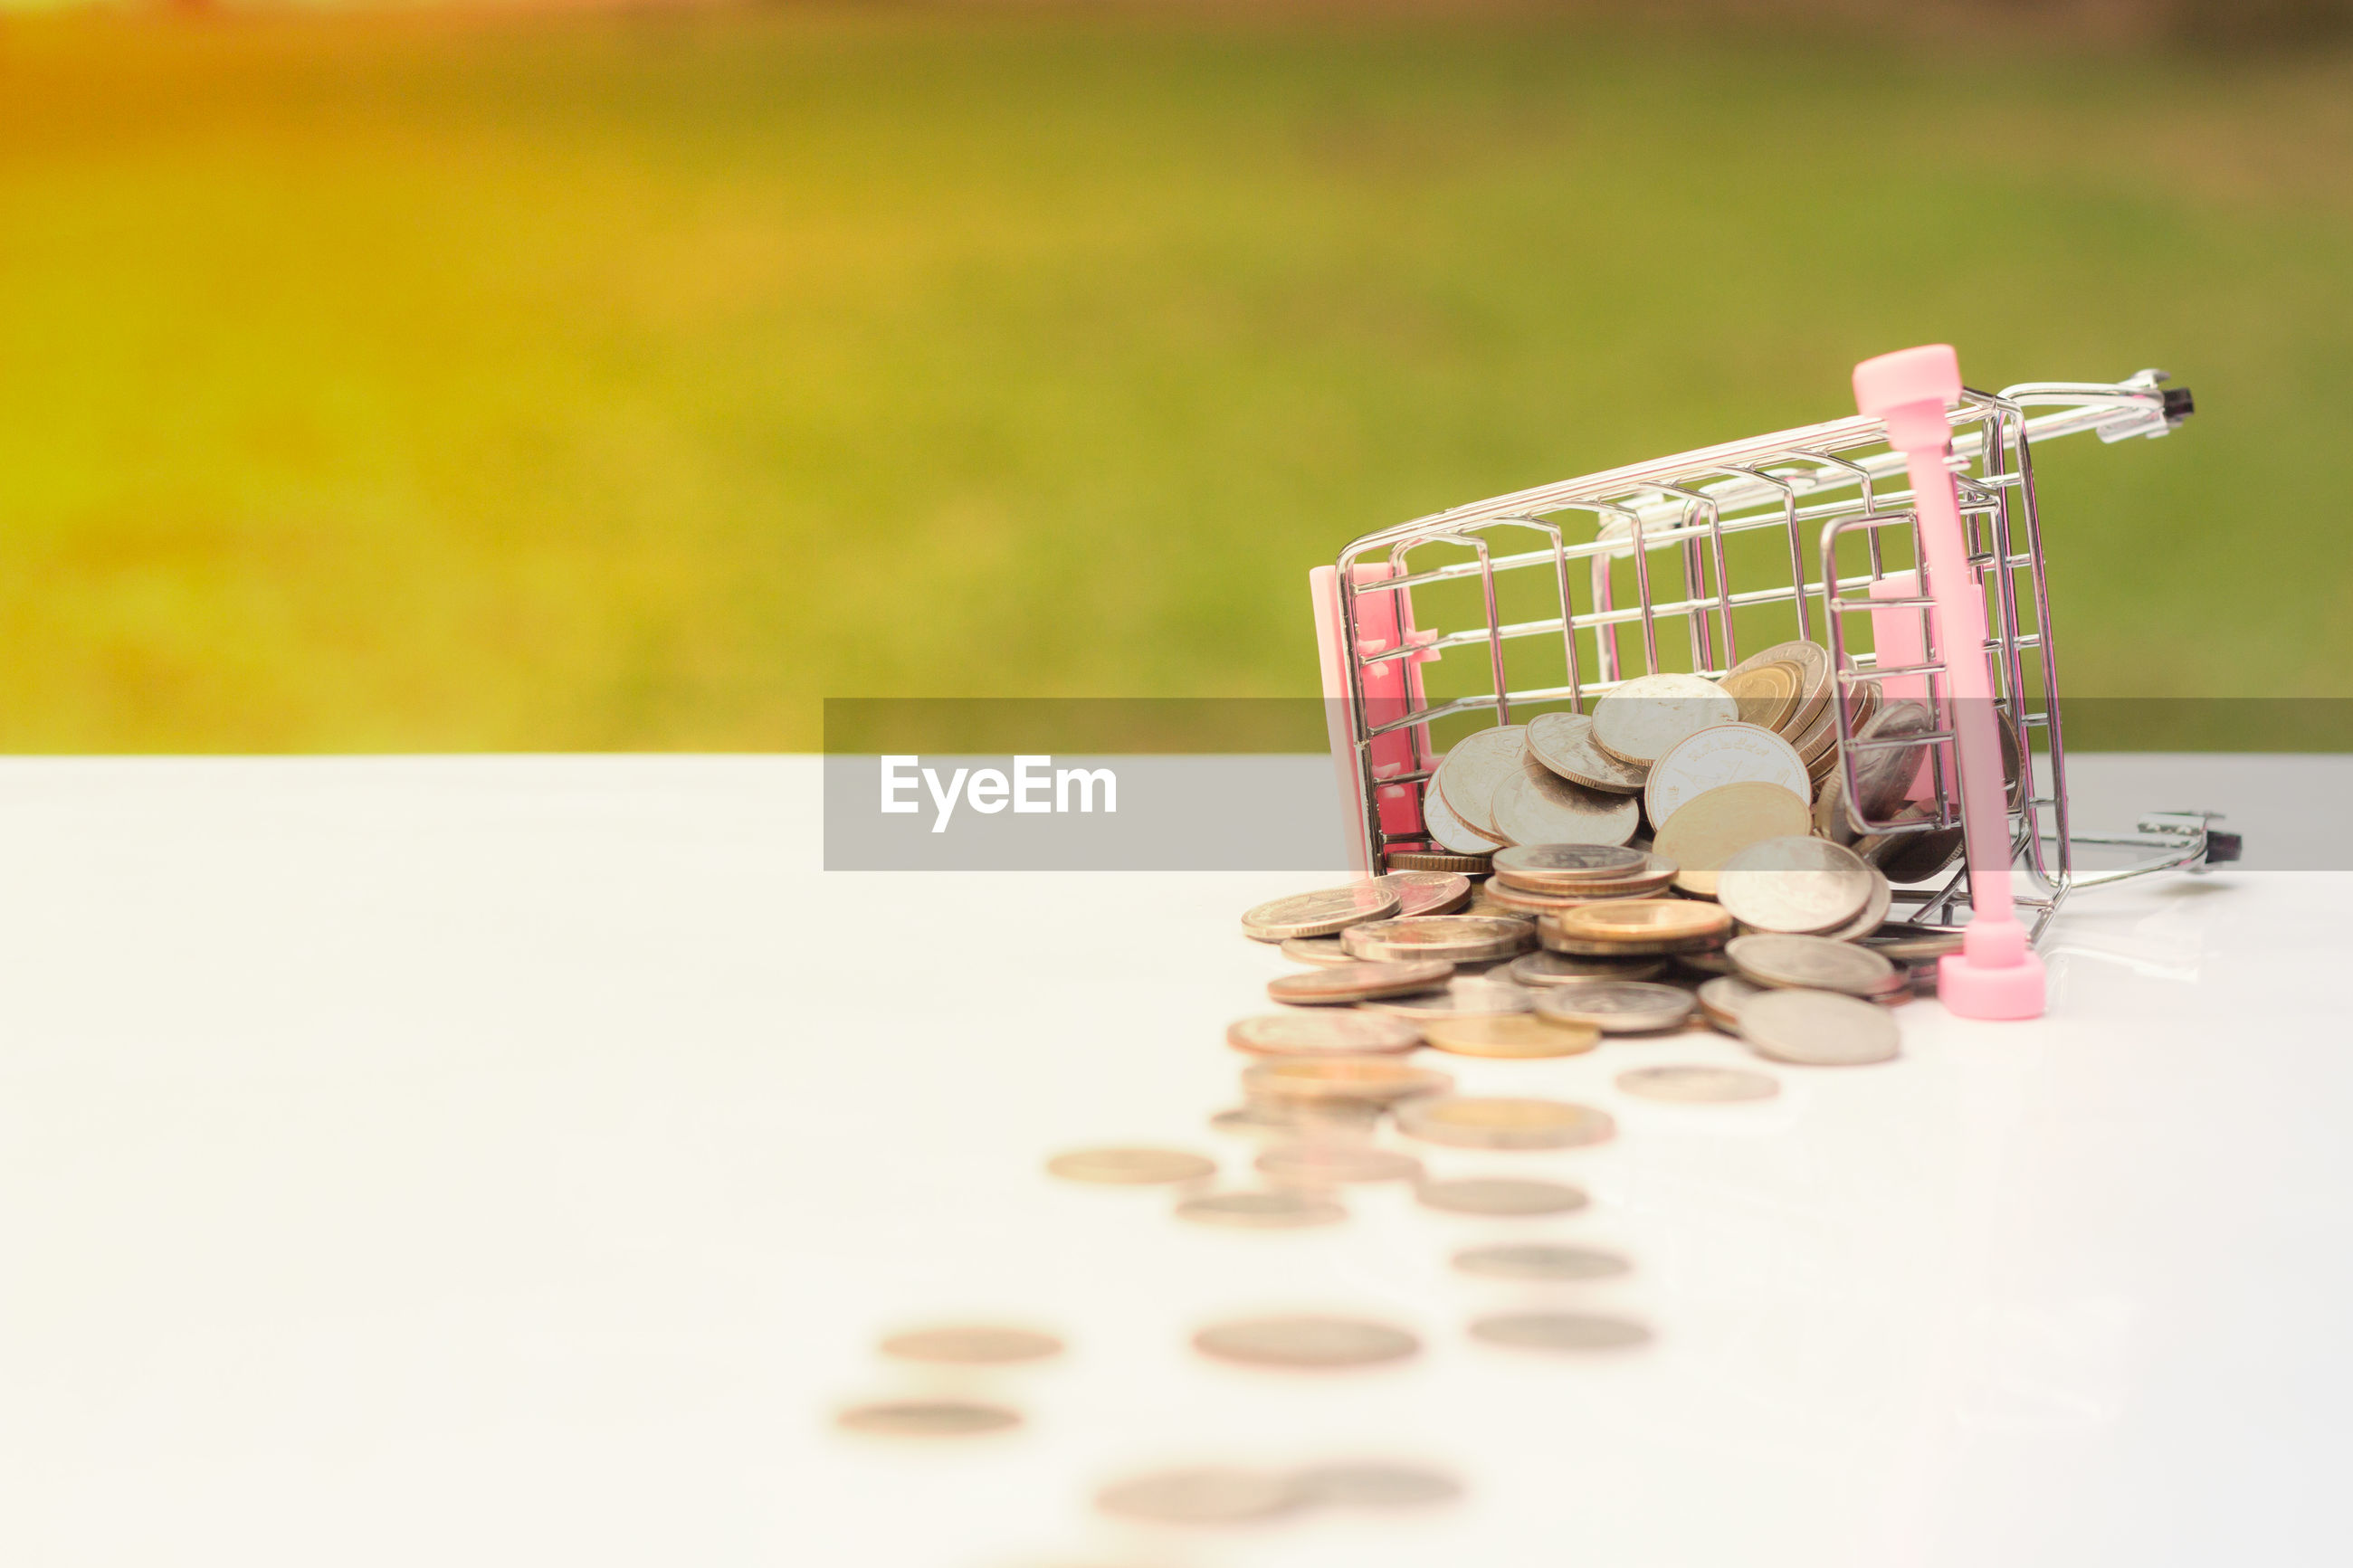 Close-up of small shopping cart and coins on table